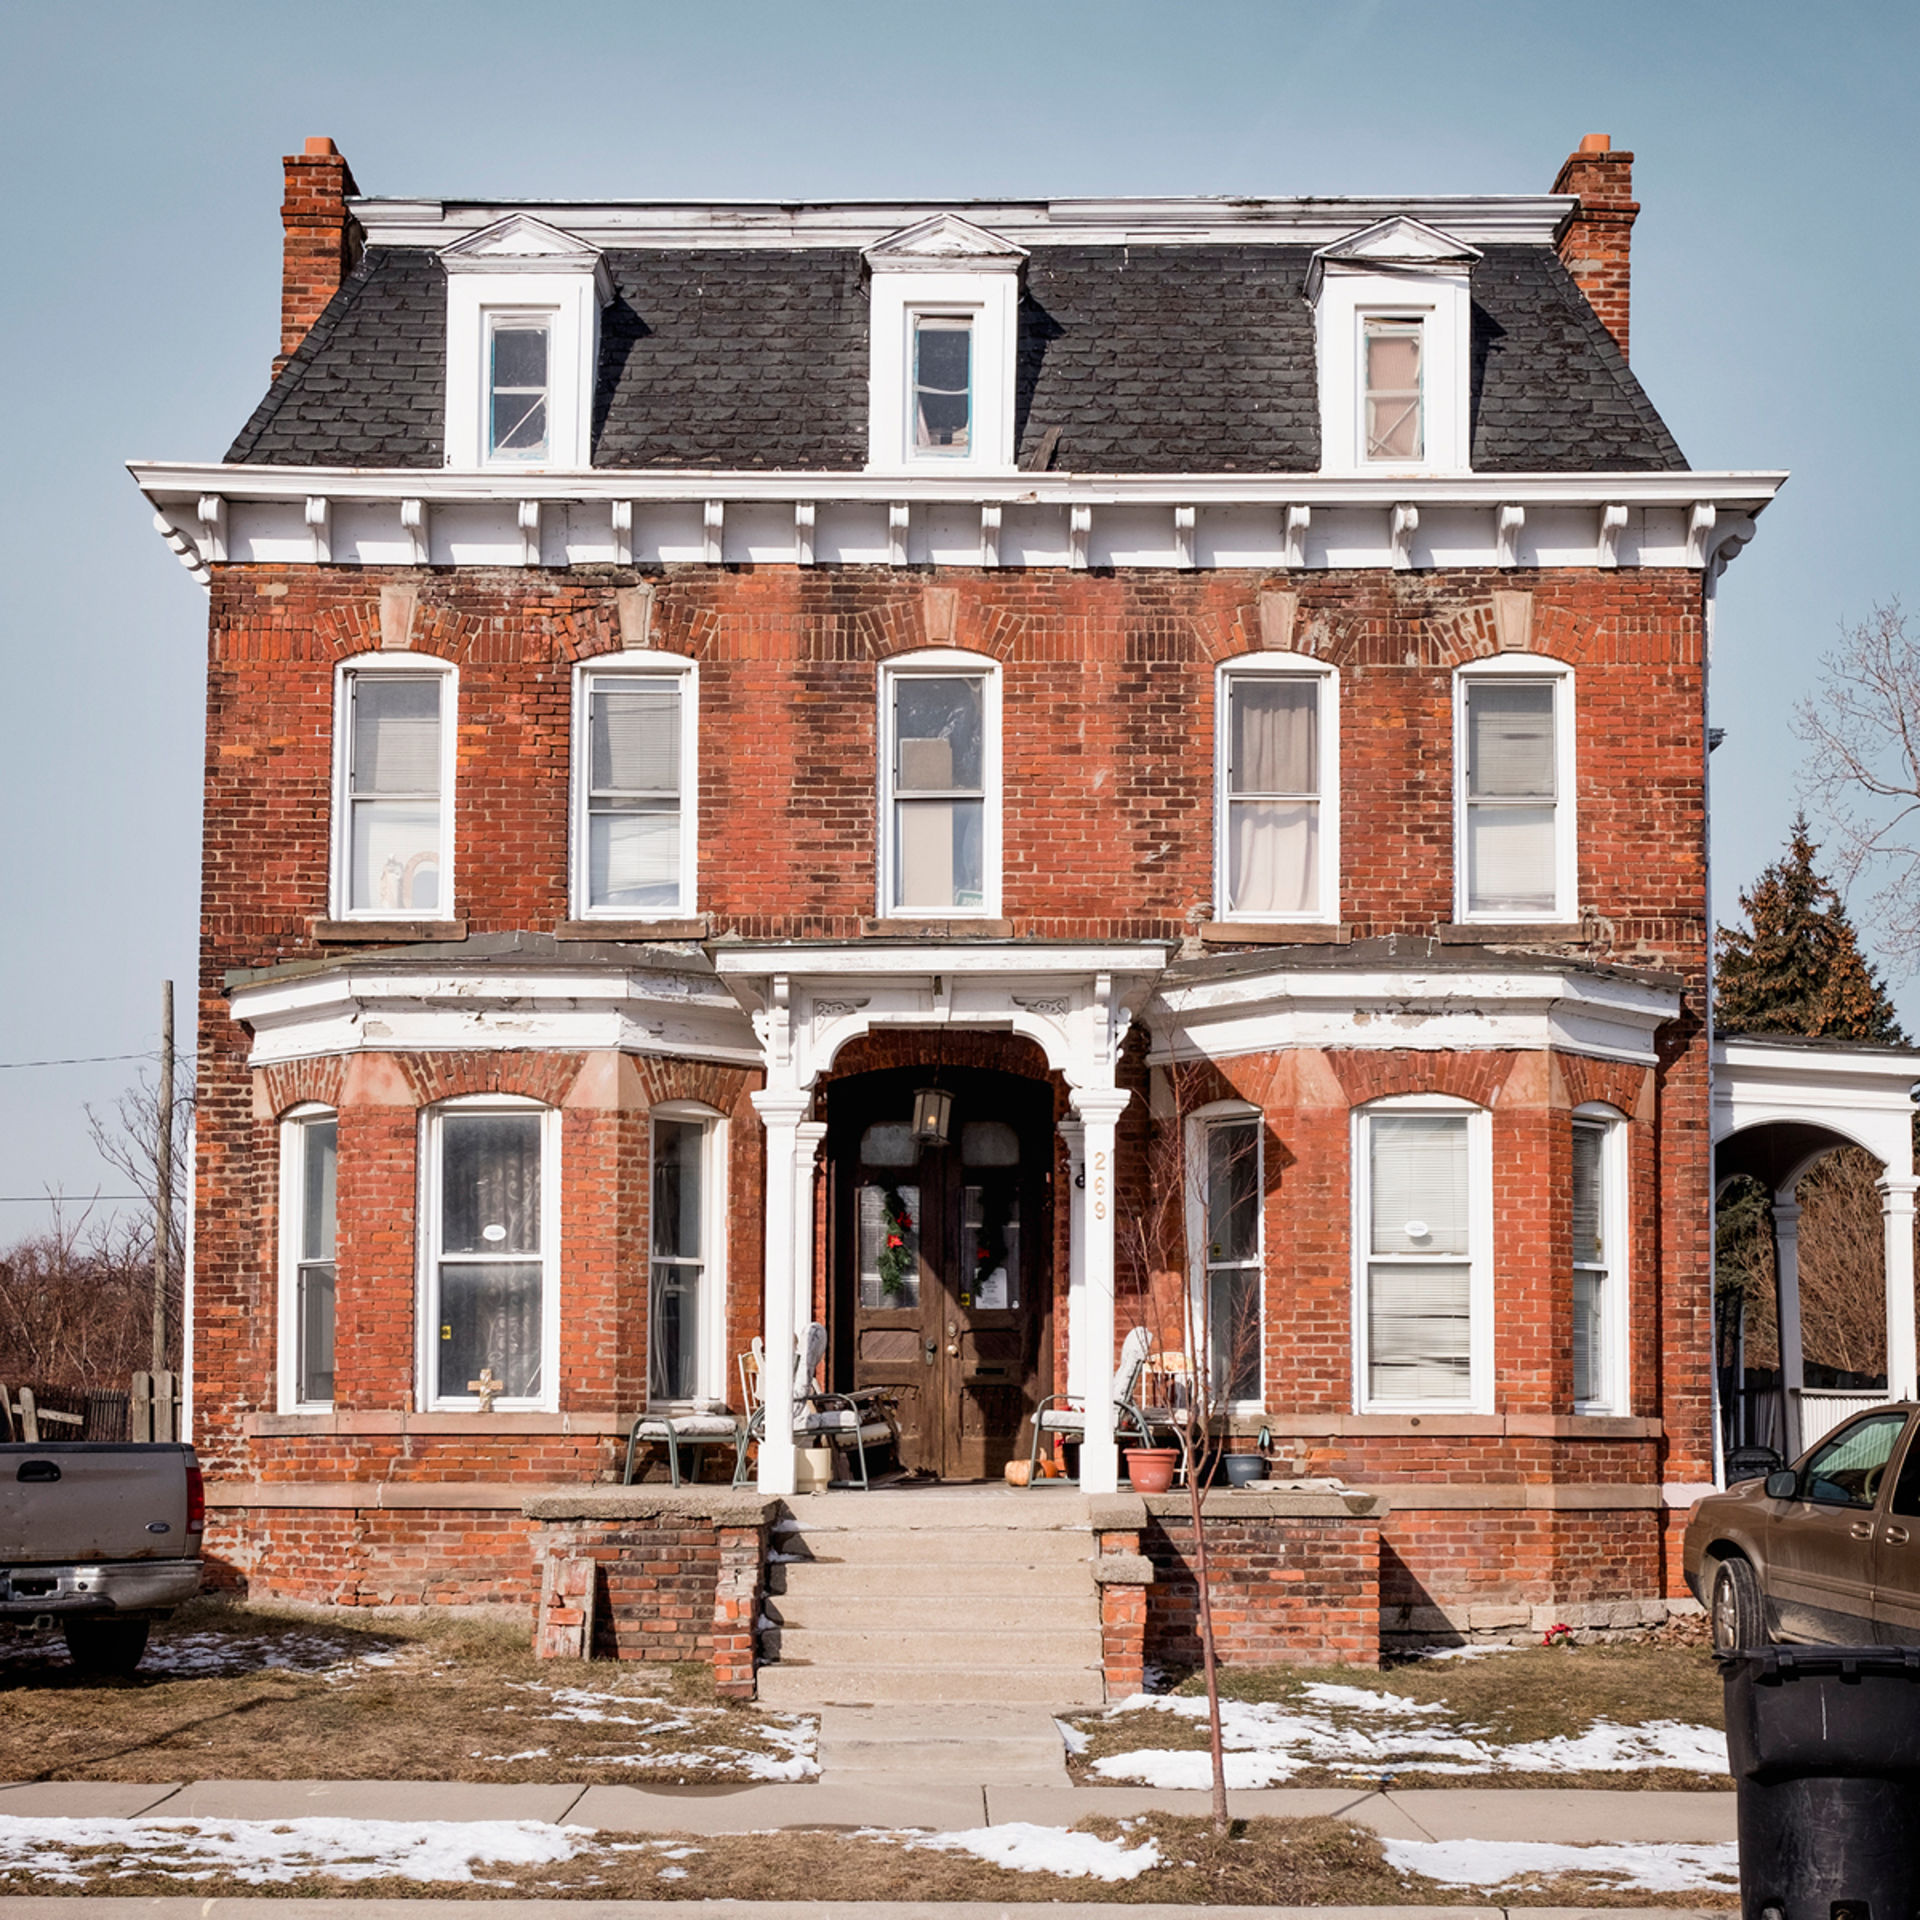 3 Detroit Homes to Consider Purchasing